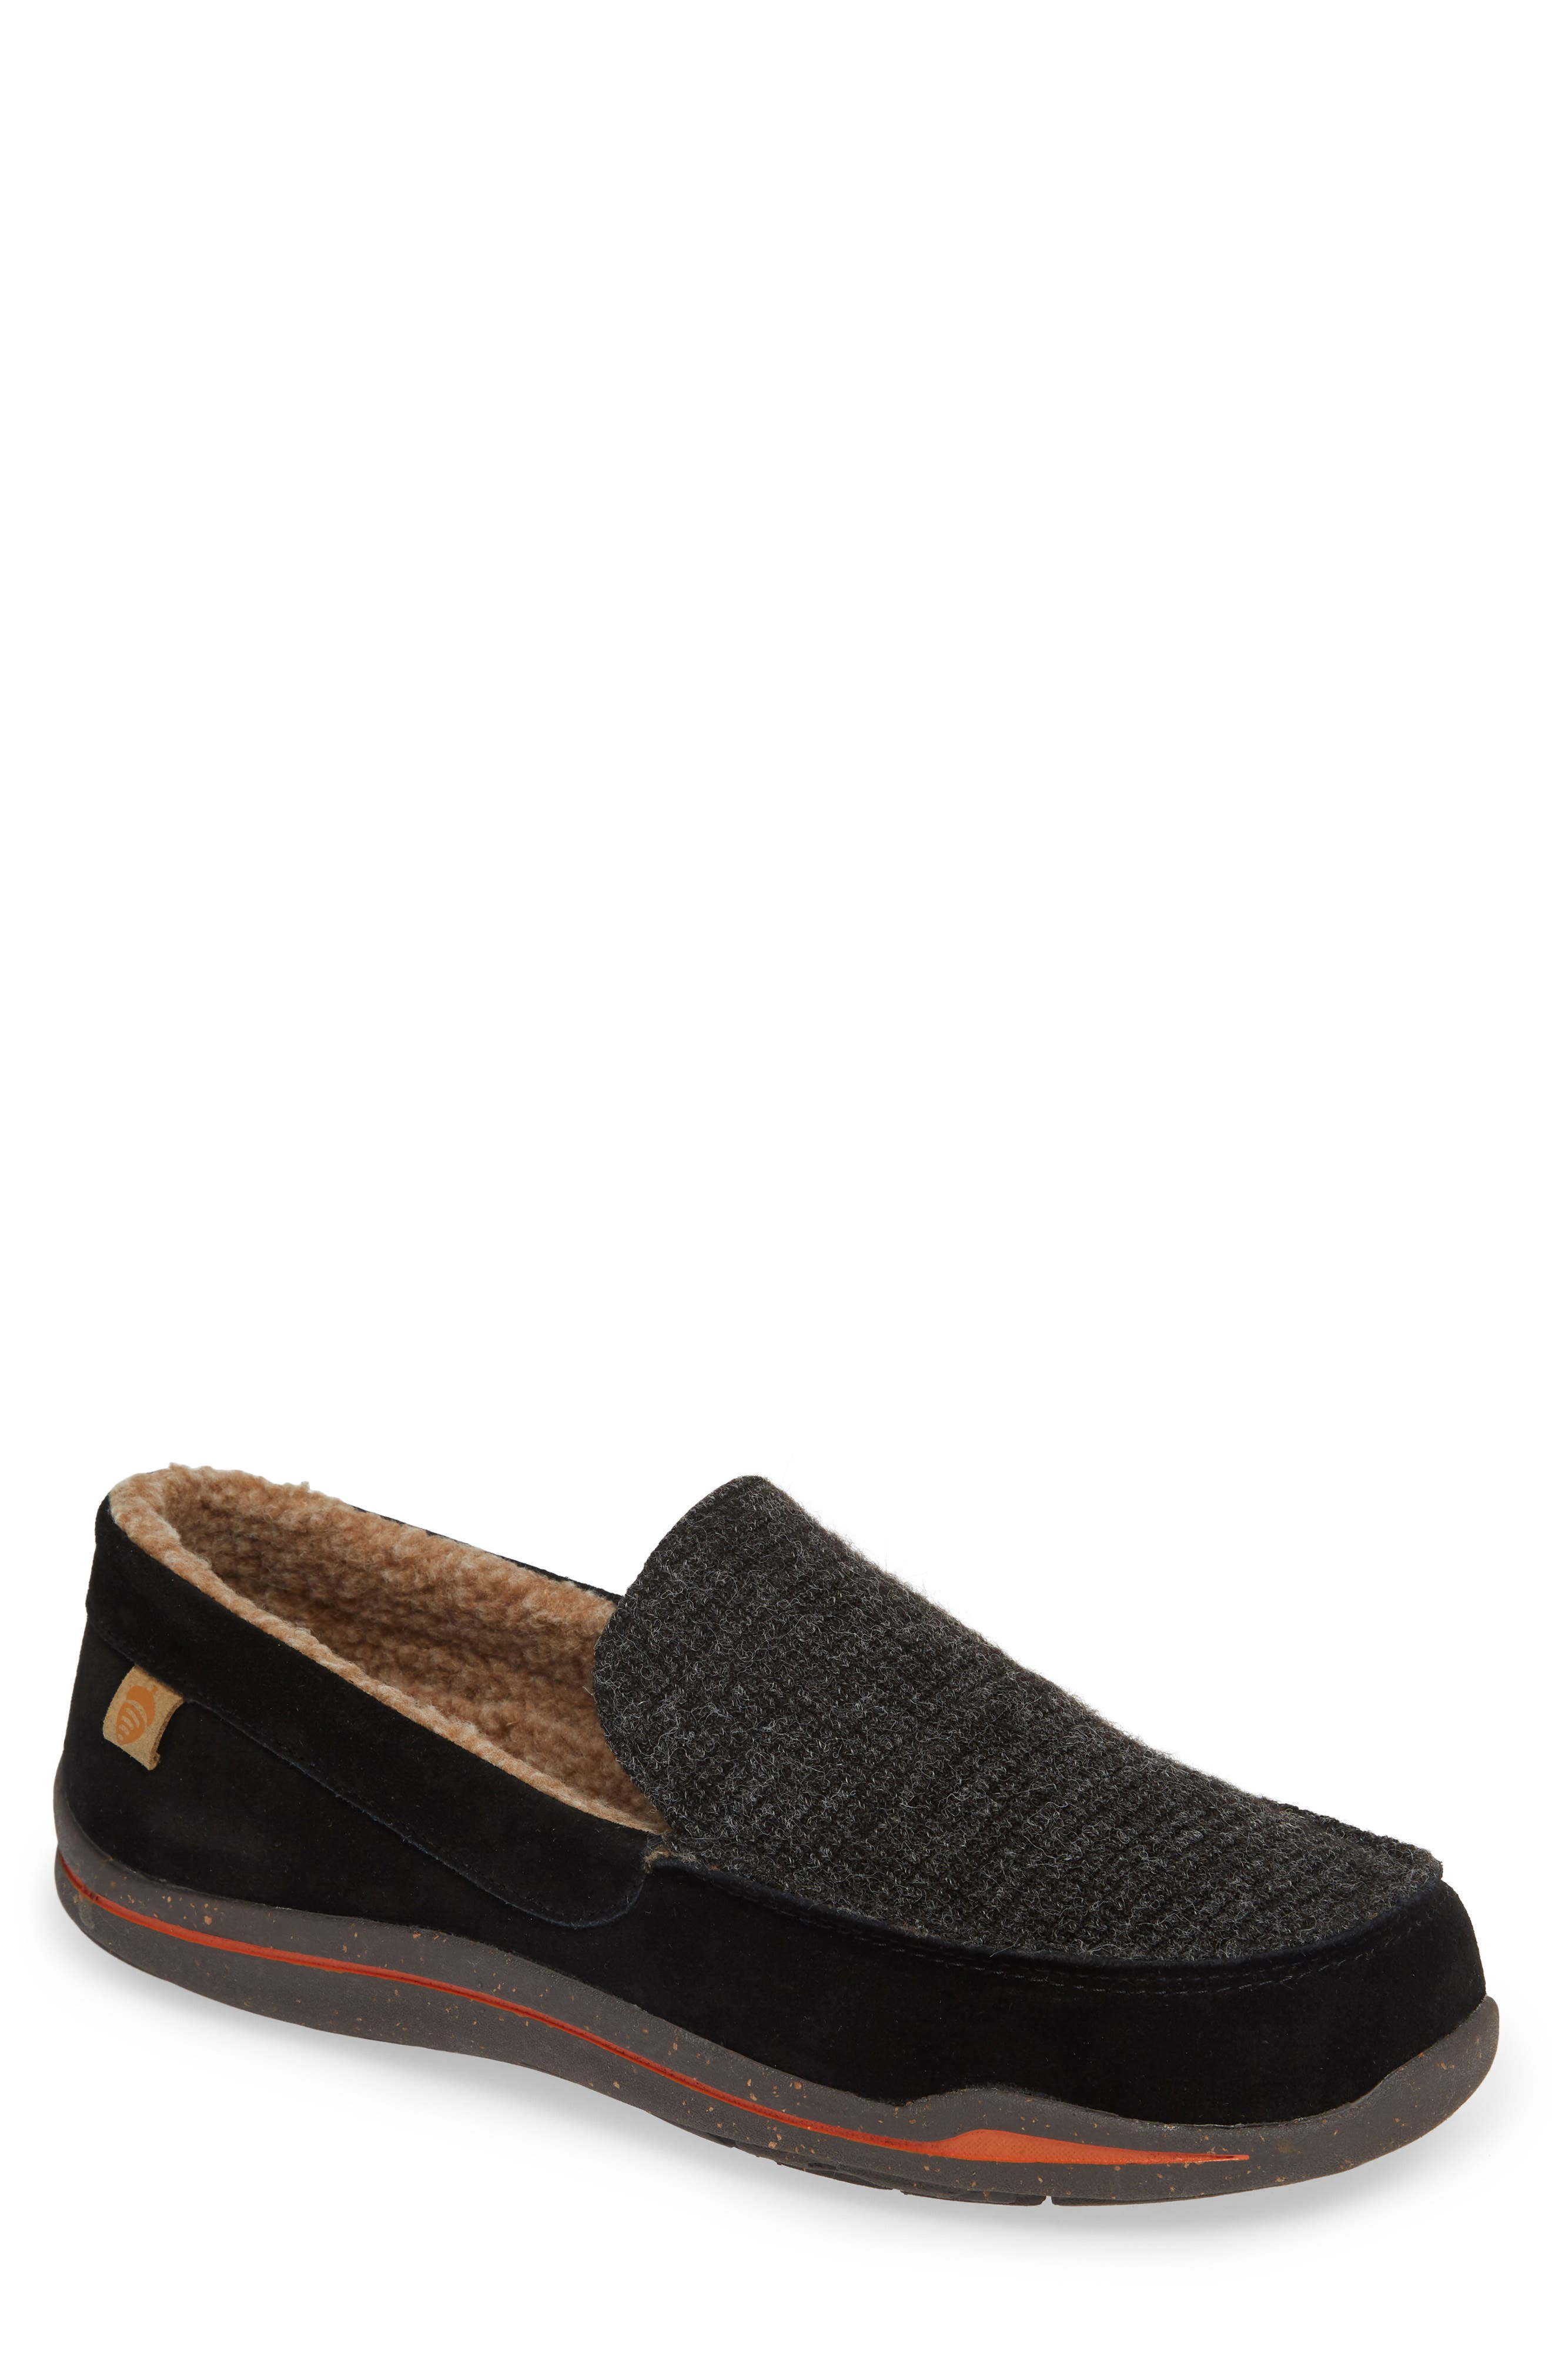 ACORN Ellsworth Moc Toe Slipper in Black